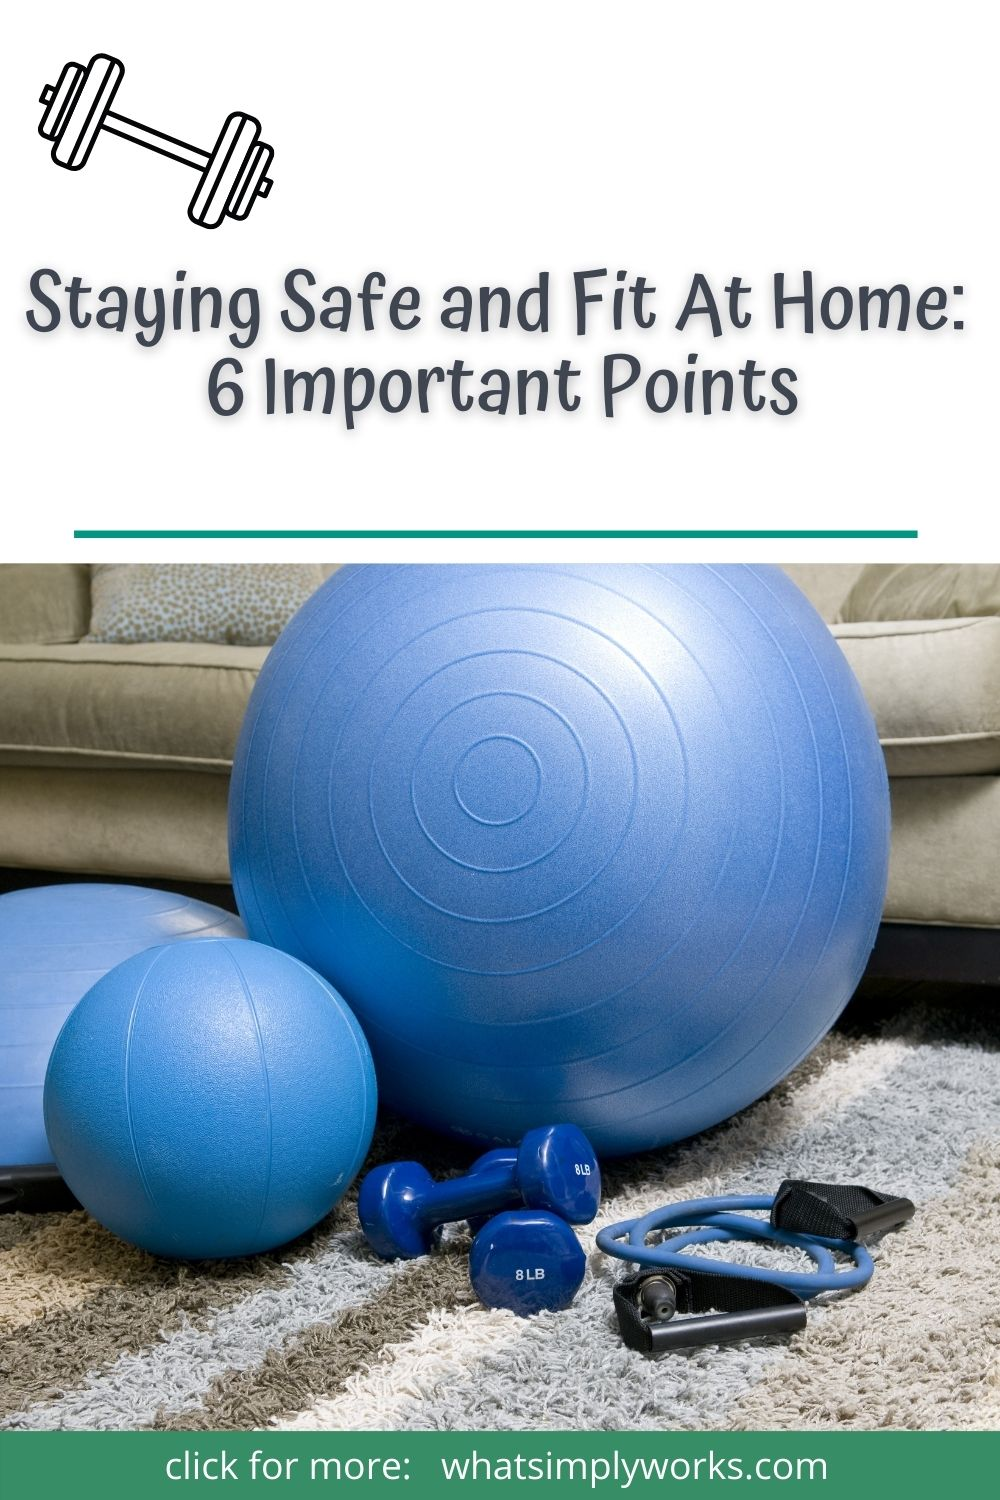 Staying Safe and Fit At Home: 6 Important Points